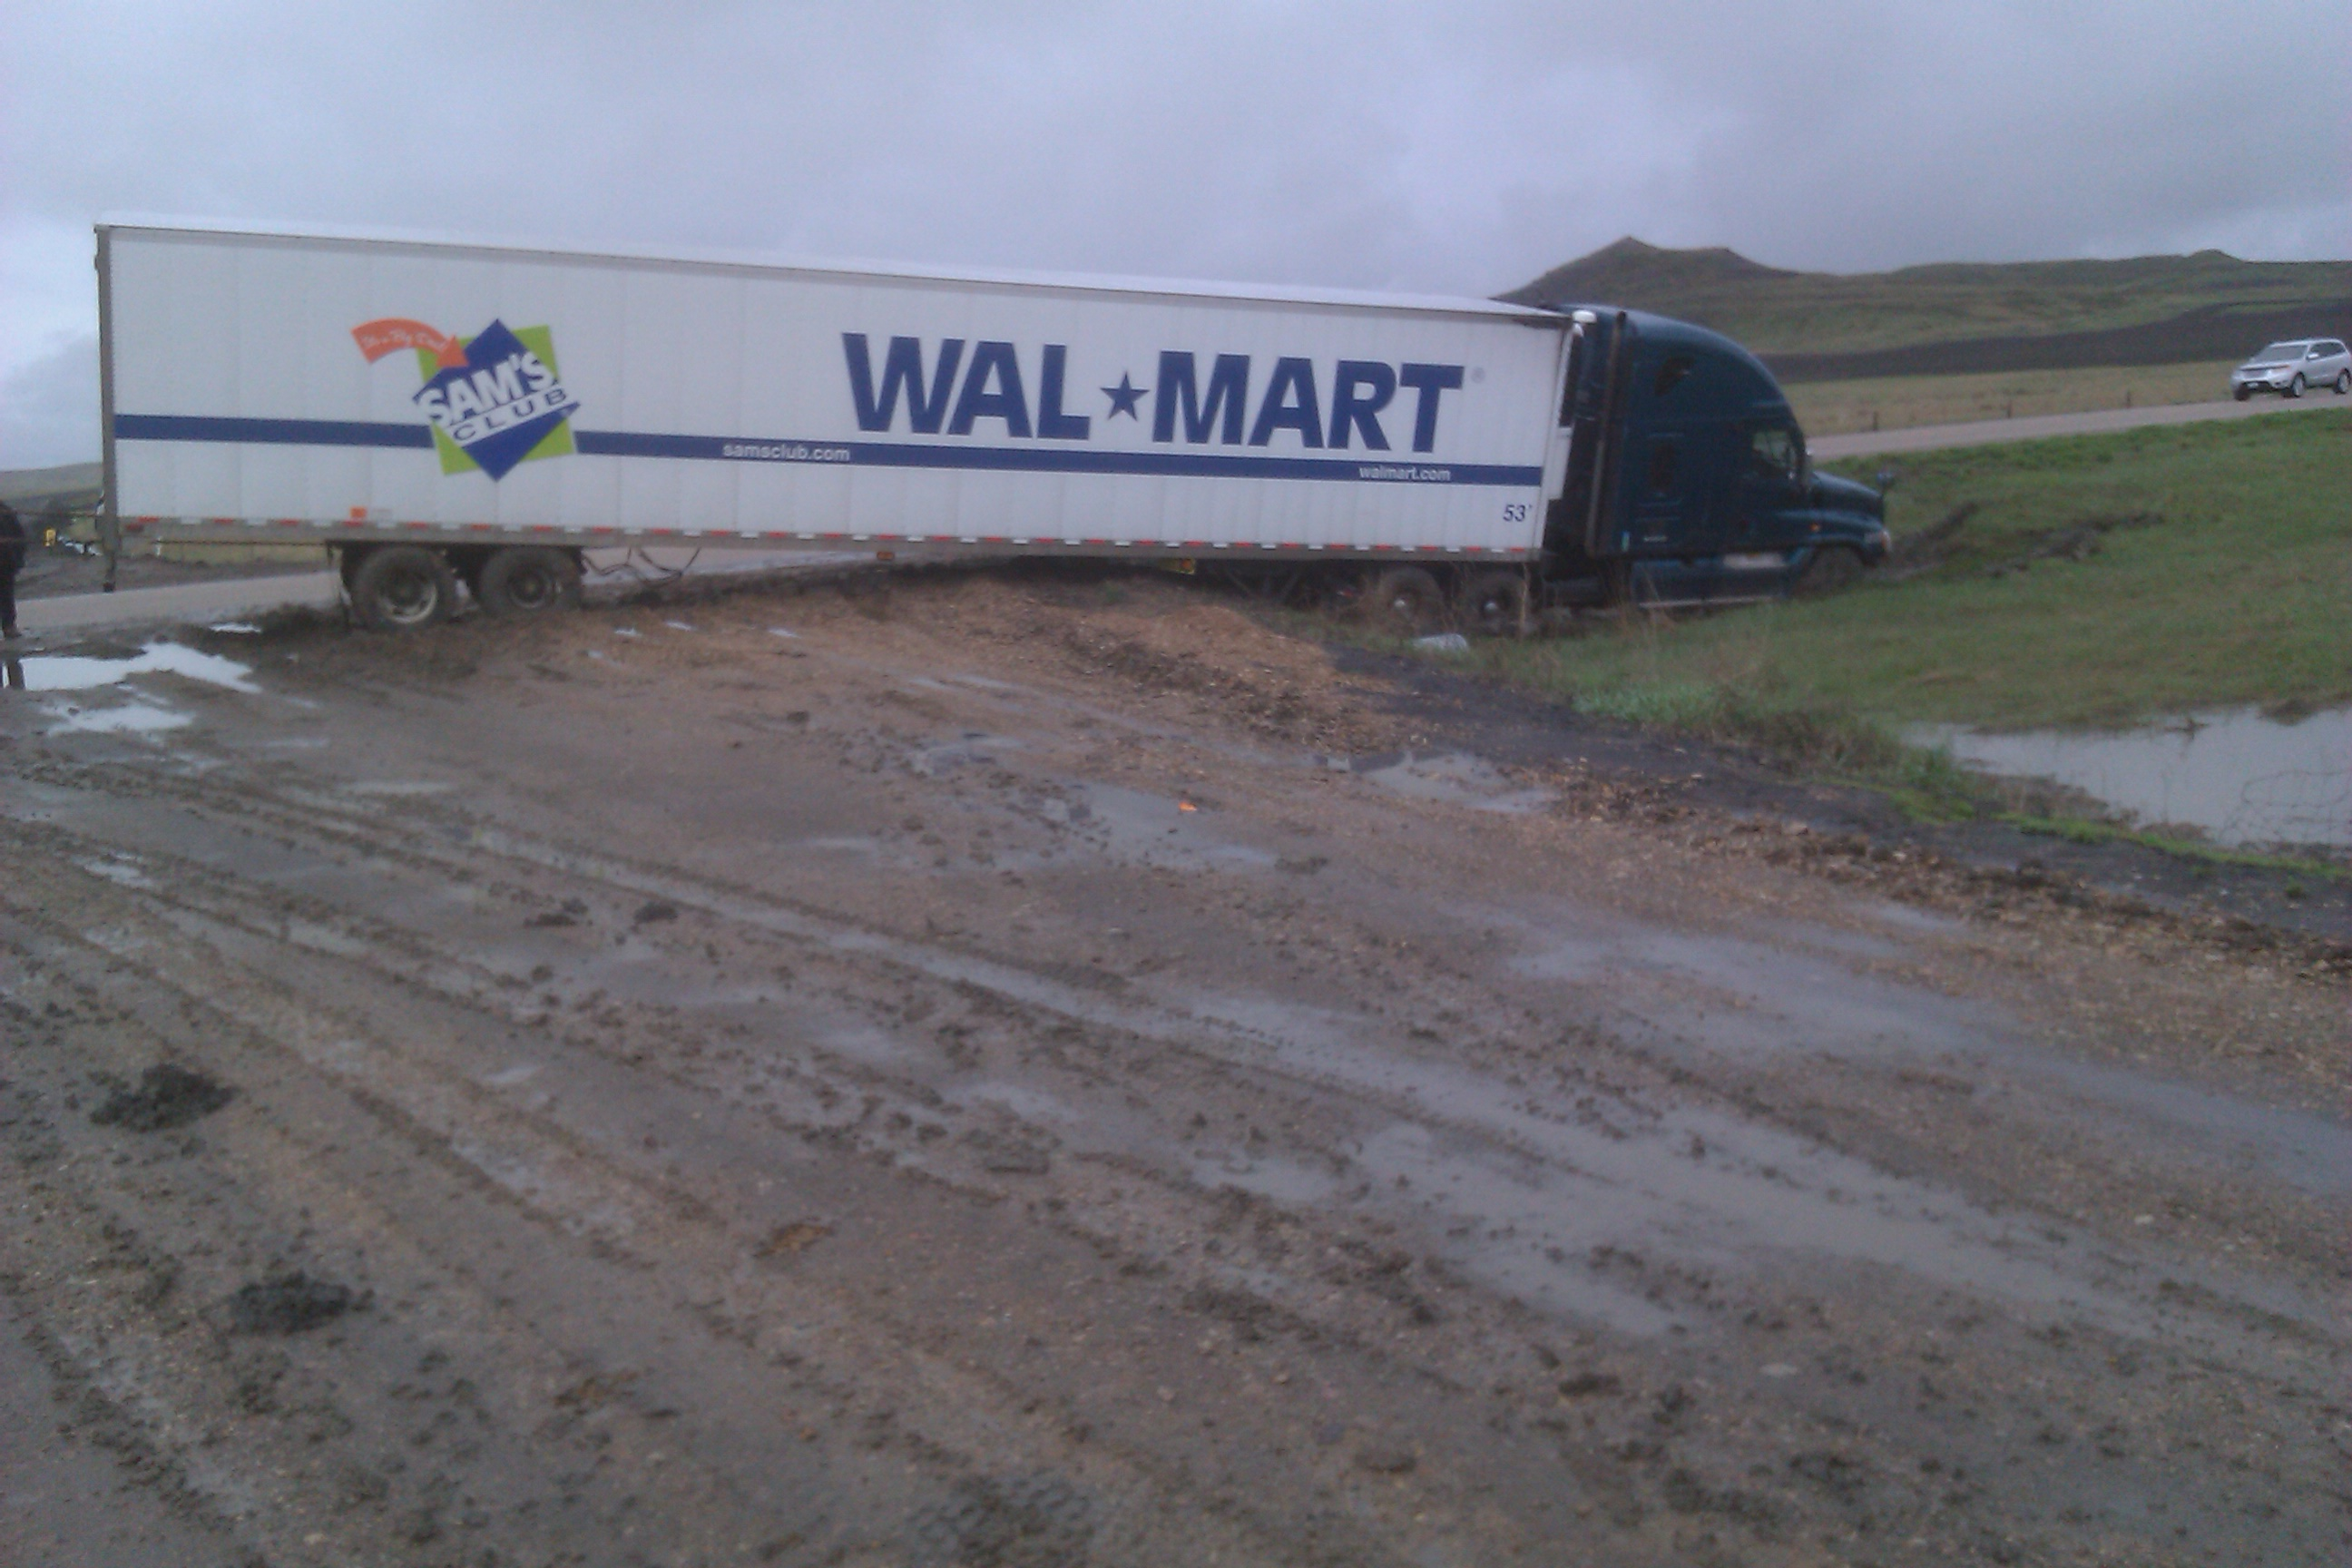 This semi loaded with food needed help getting back between the lines west of Alzada.